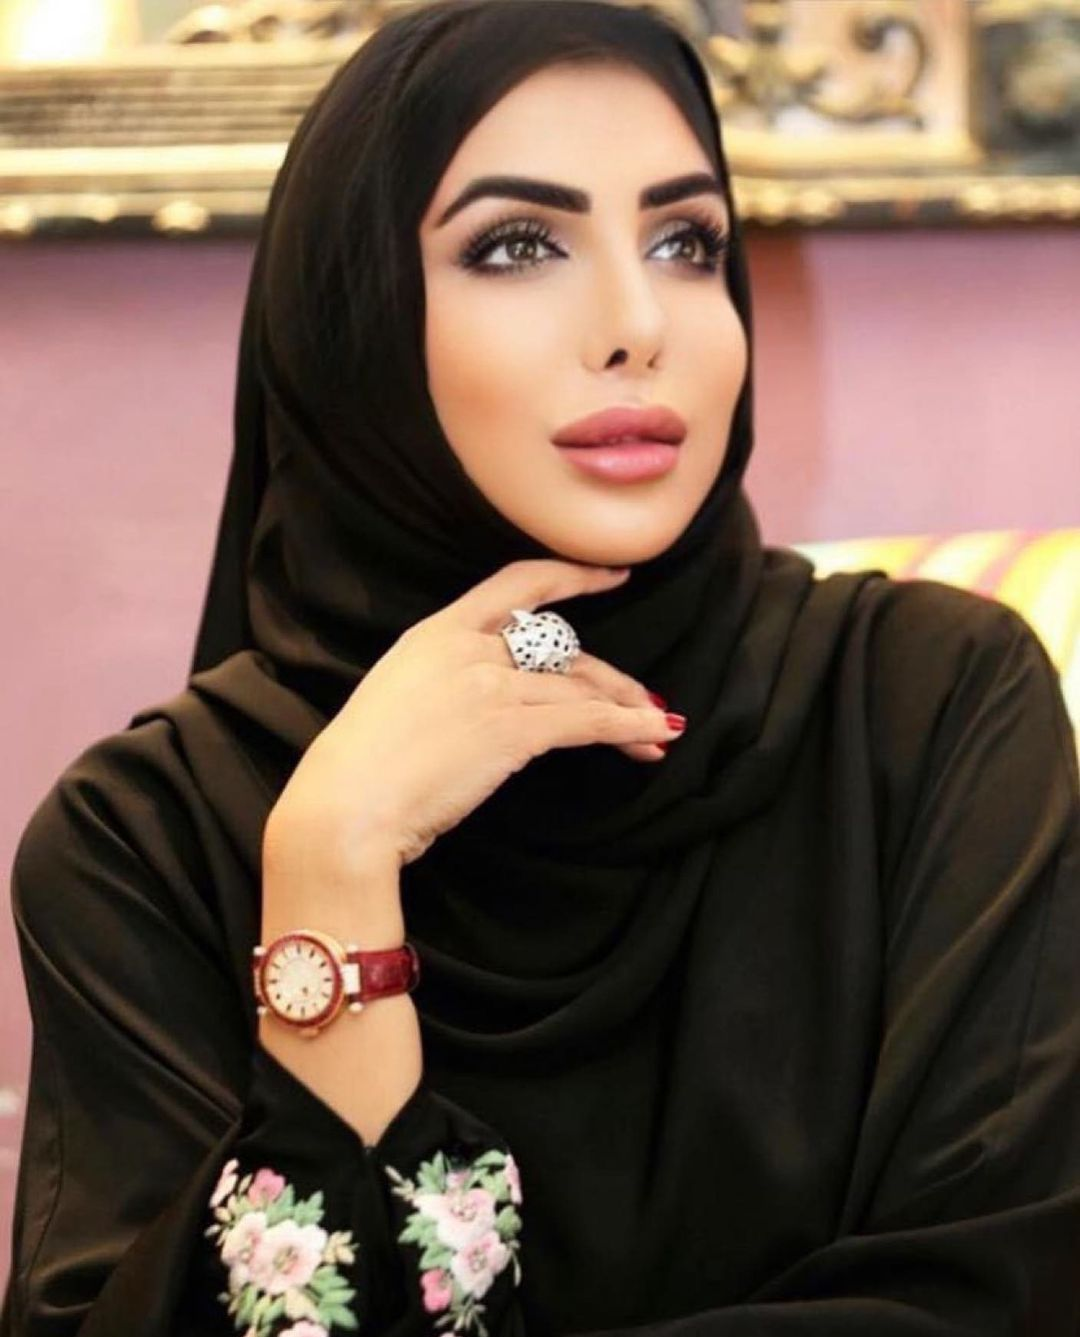 Her Highness Sheikha Hend Bint Feisal Al Qassimi and her Royal Perfumes of Dubai